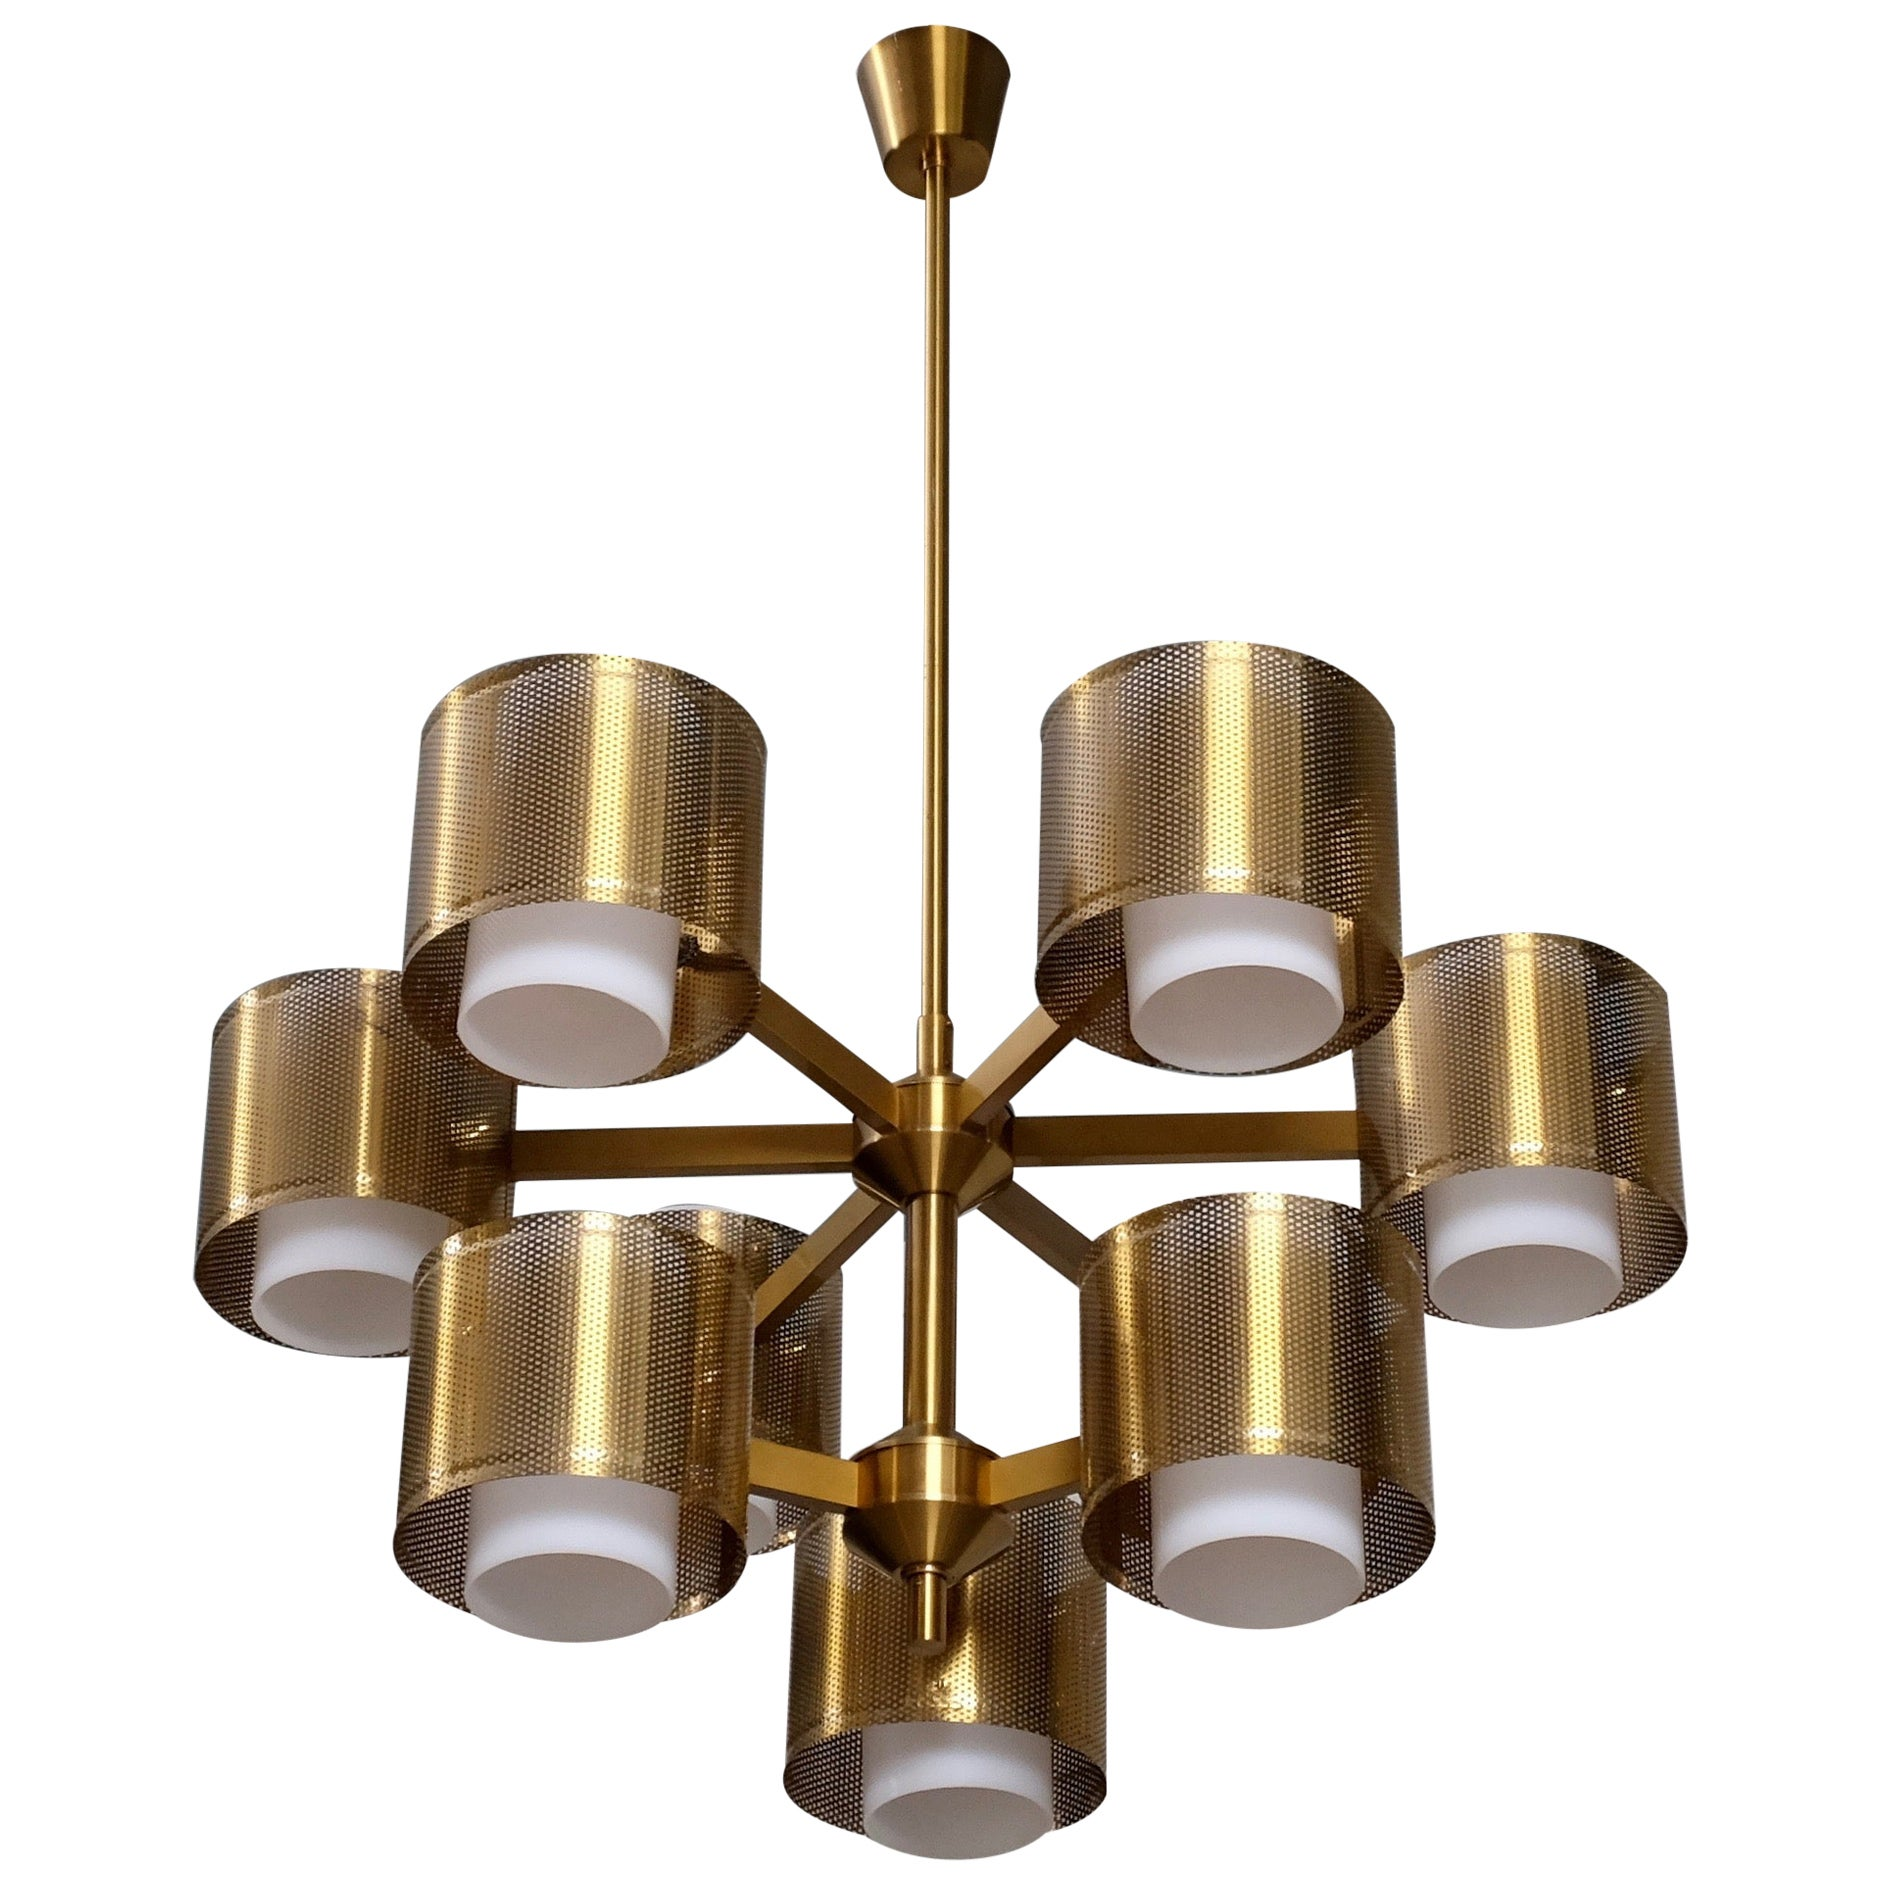 Set of 4 Brass Chandeliers by Holger Johansson, Sweden, 1960s